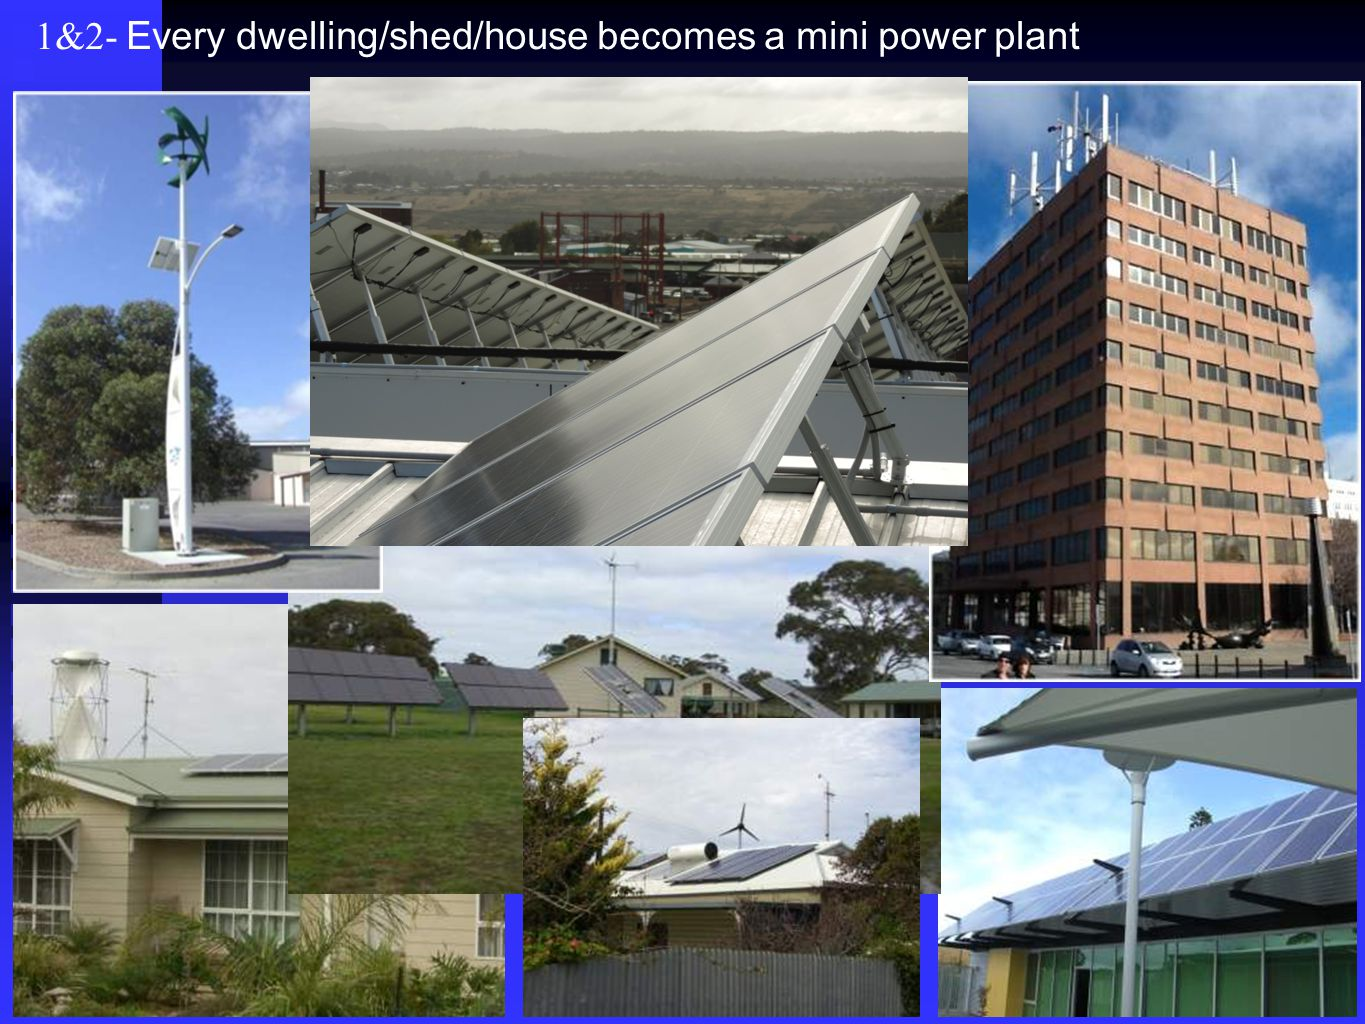 1&2- Every dwelling/shed/house becomes a mini power plant